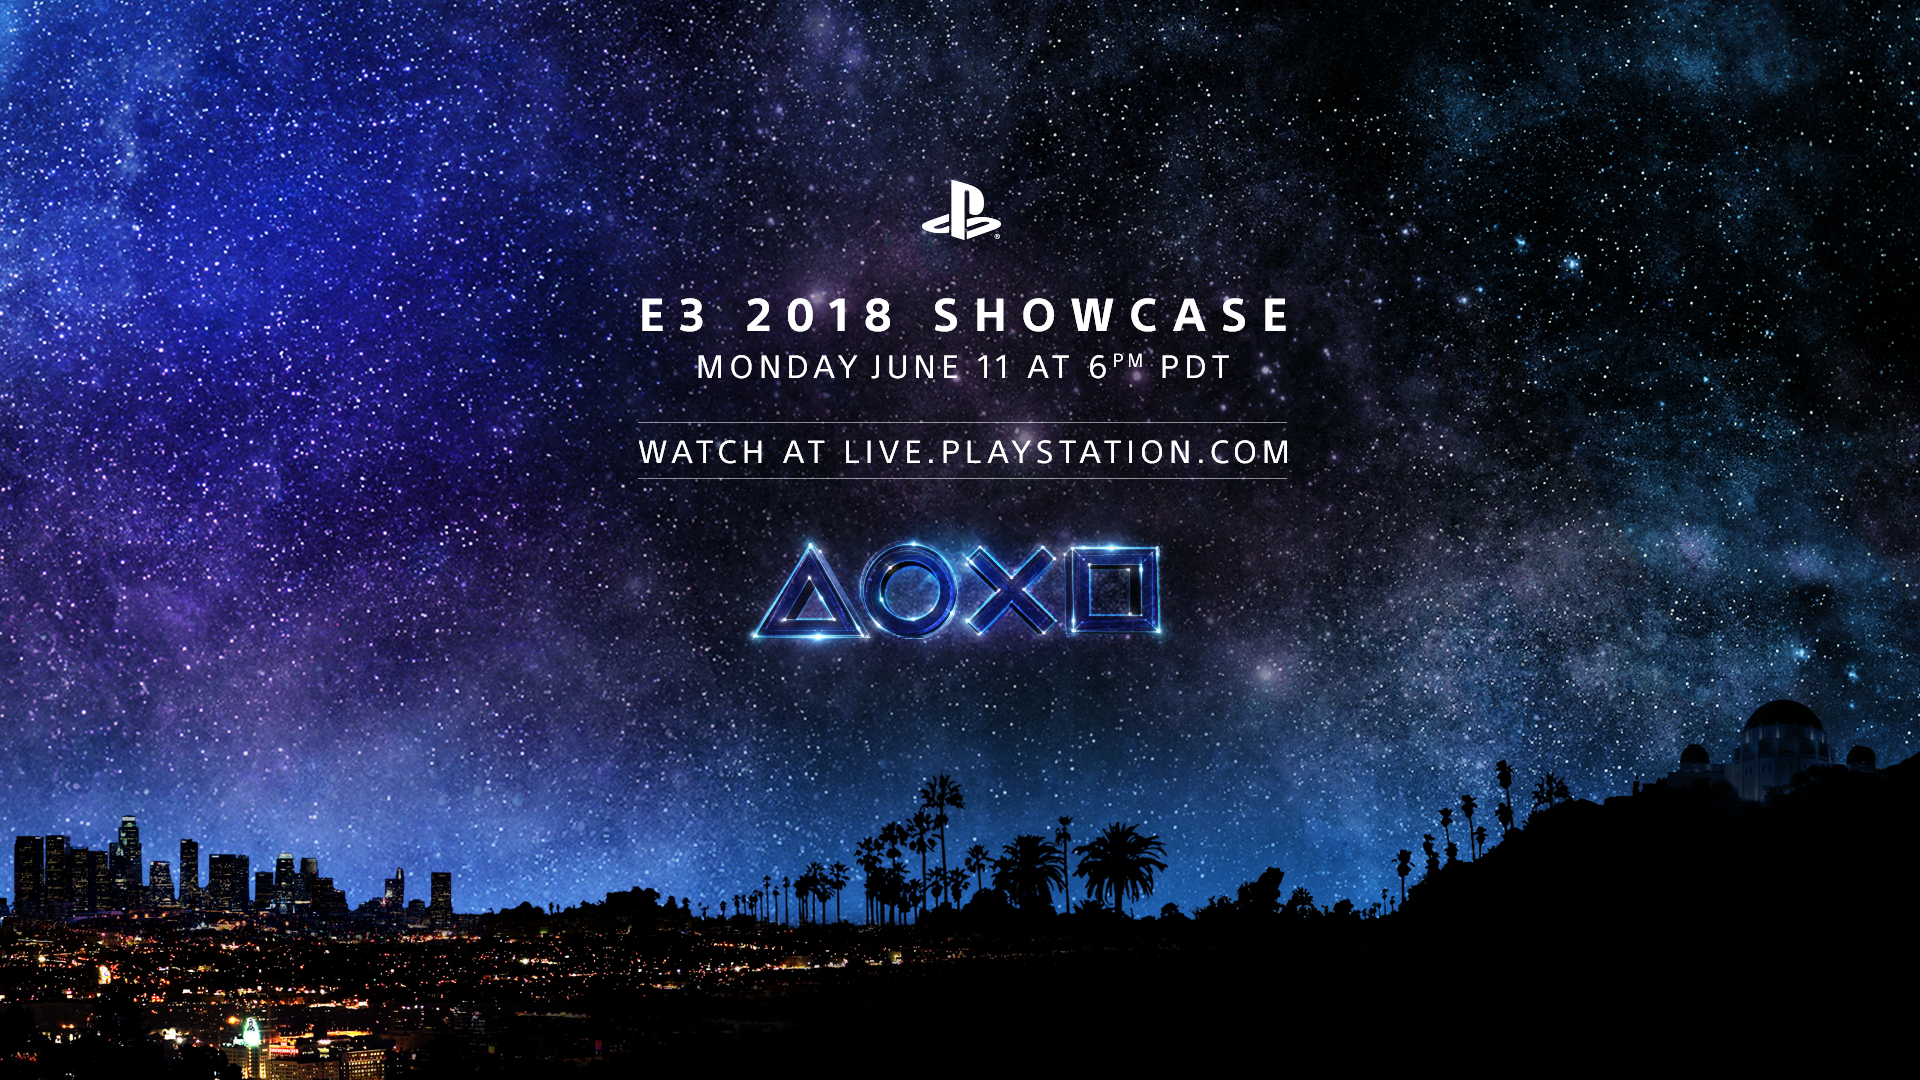 E3 Sony Conference Details Revealed